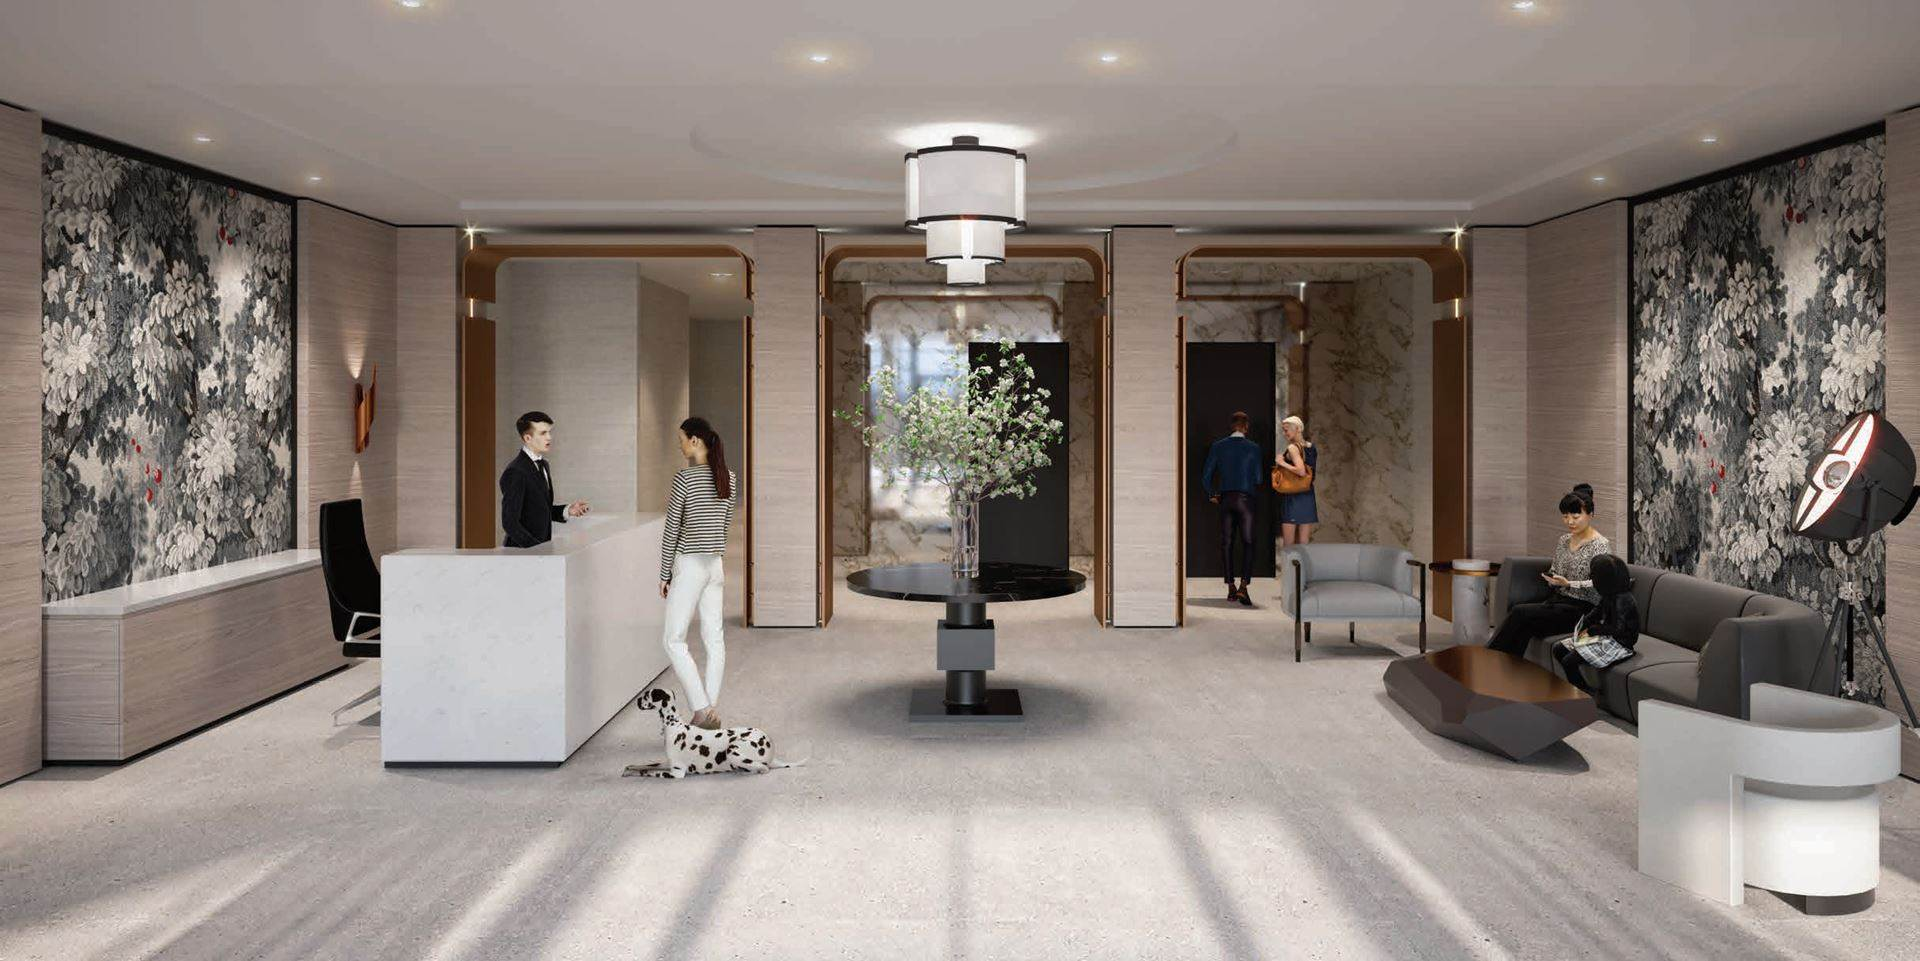 2020_11_05_04_53_10_thedylancondominiums_chestnuthilldevelopments_rendering_lobby